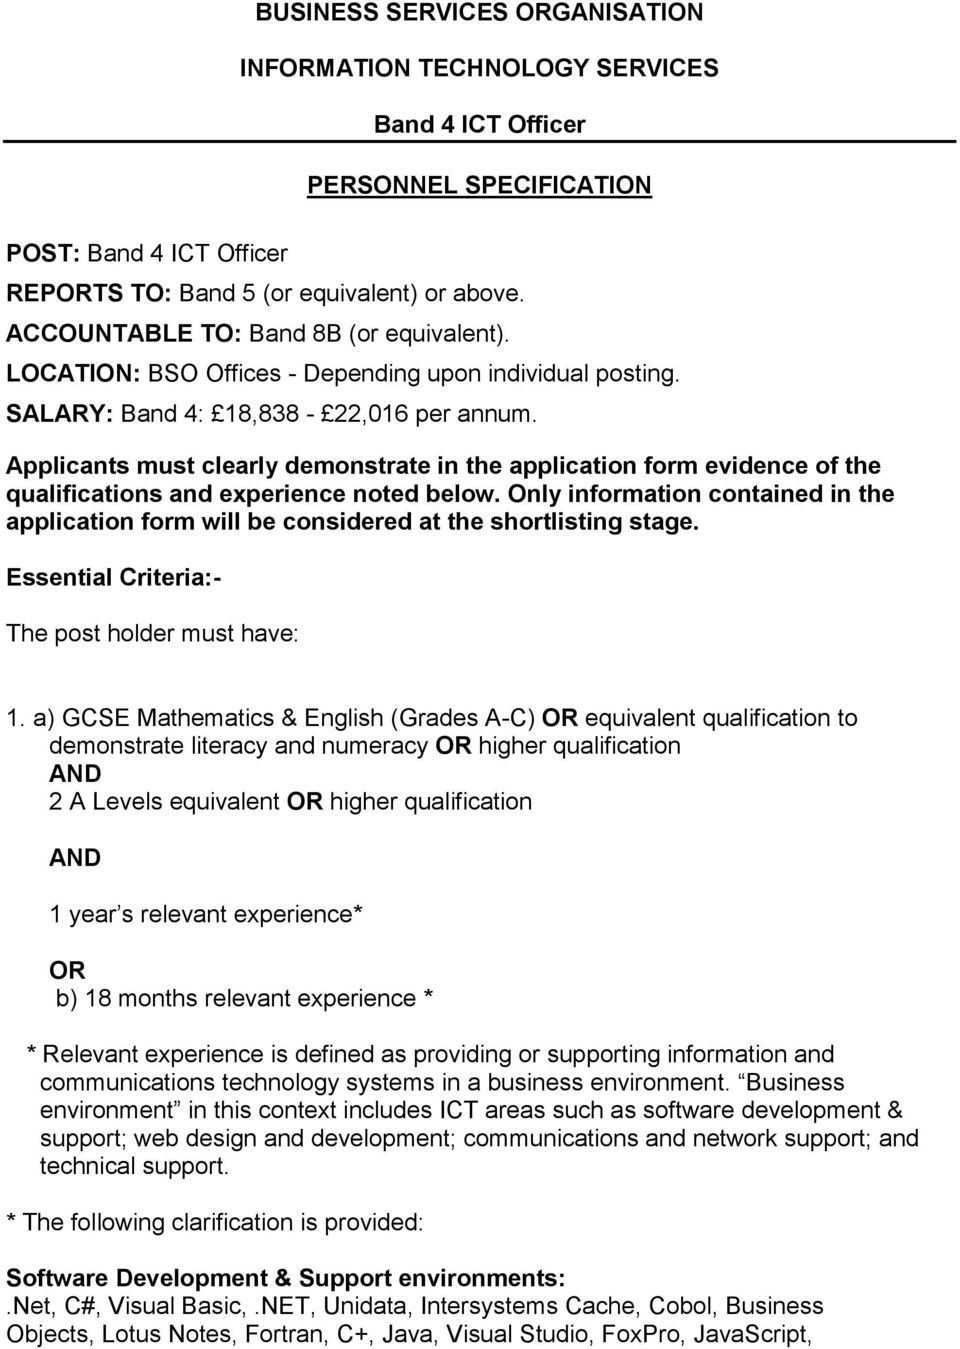 Applicants must clearly demonstrate in the application form evidence of the qualifications and experience noted below.